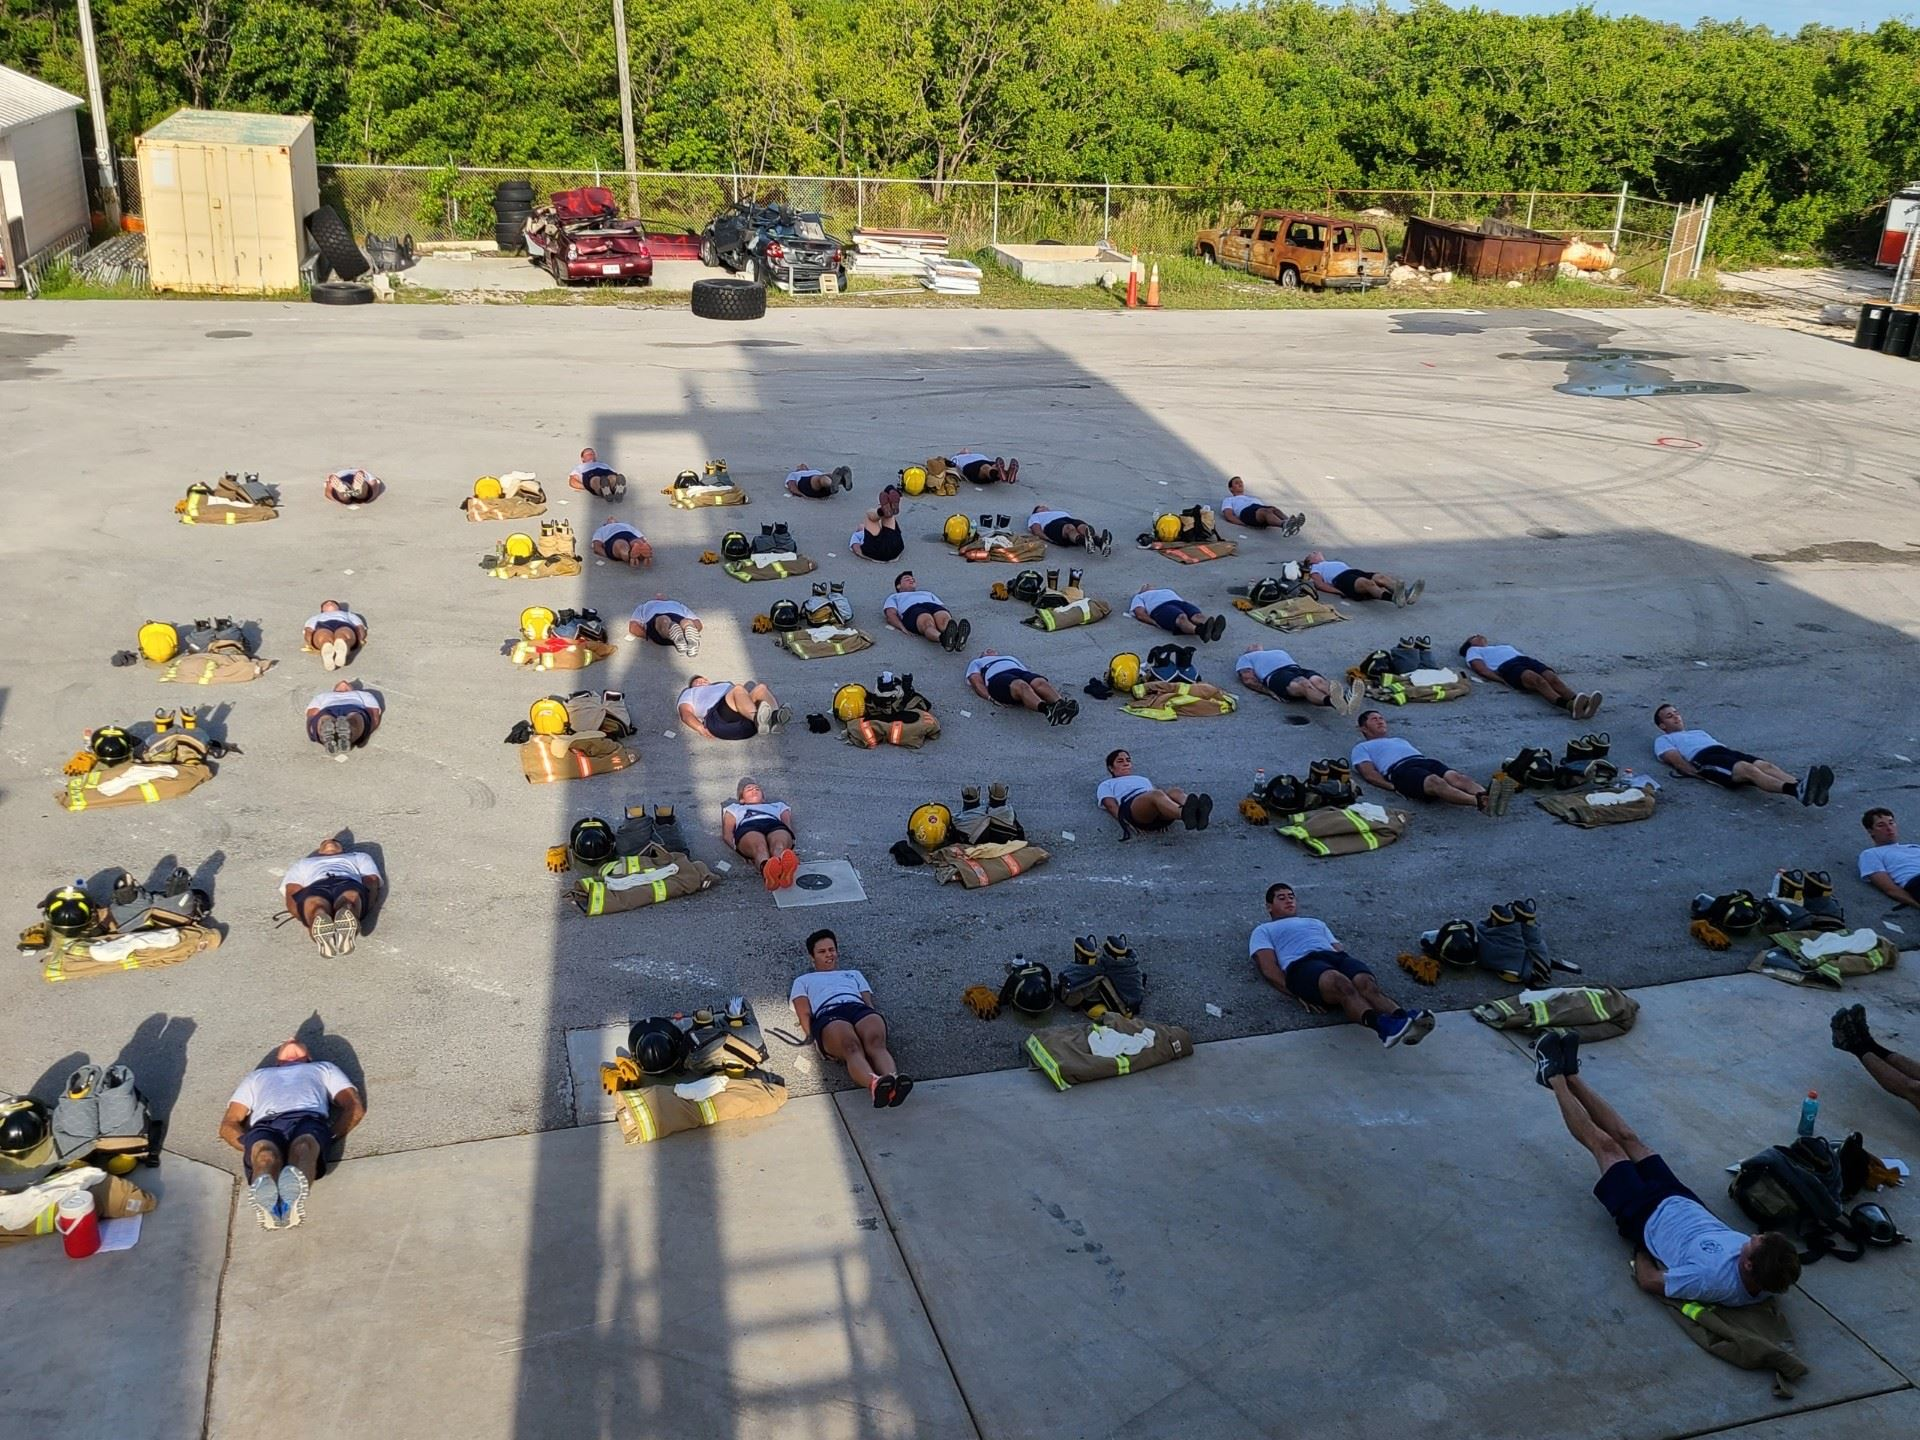 The Hot Shots lay down on the ground and do warm-ups in rows during training.